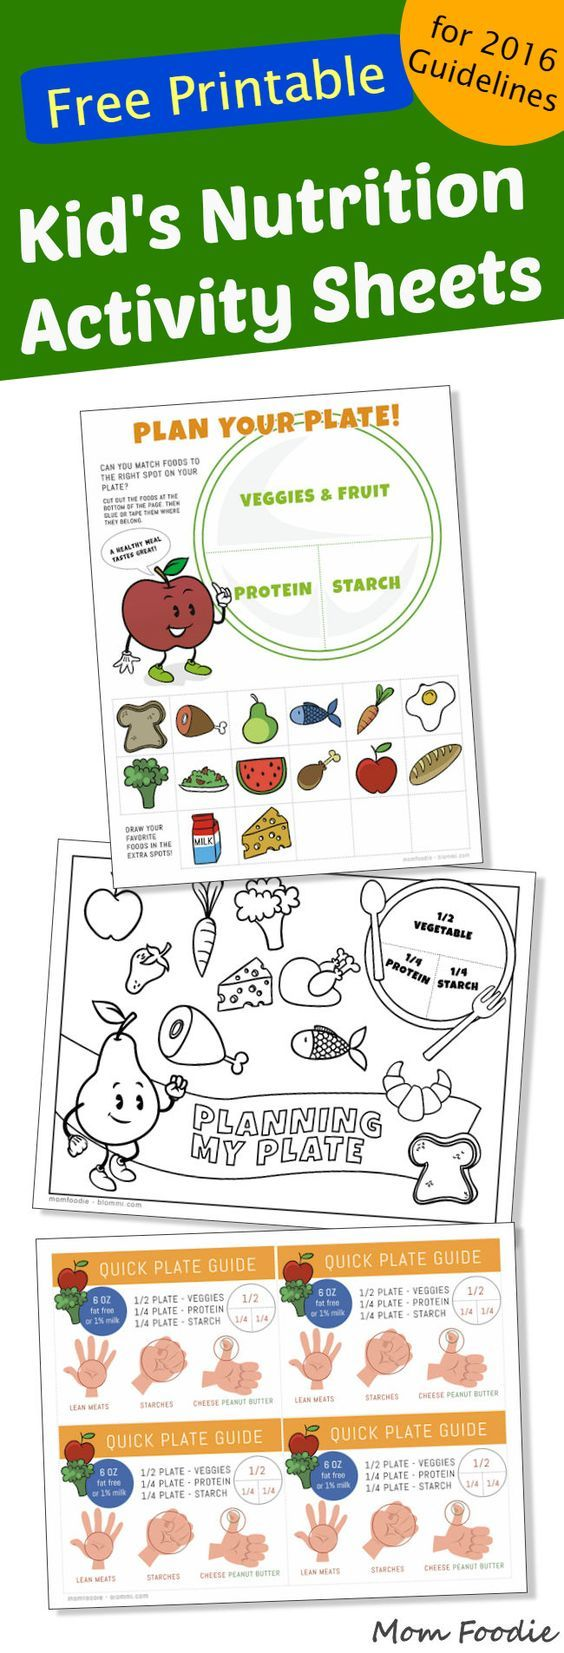 Free Printable Kids Nutrition Activity Sheets based off